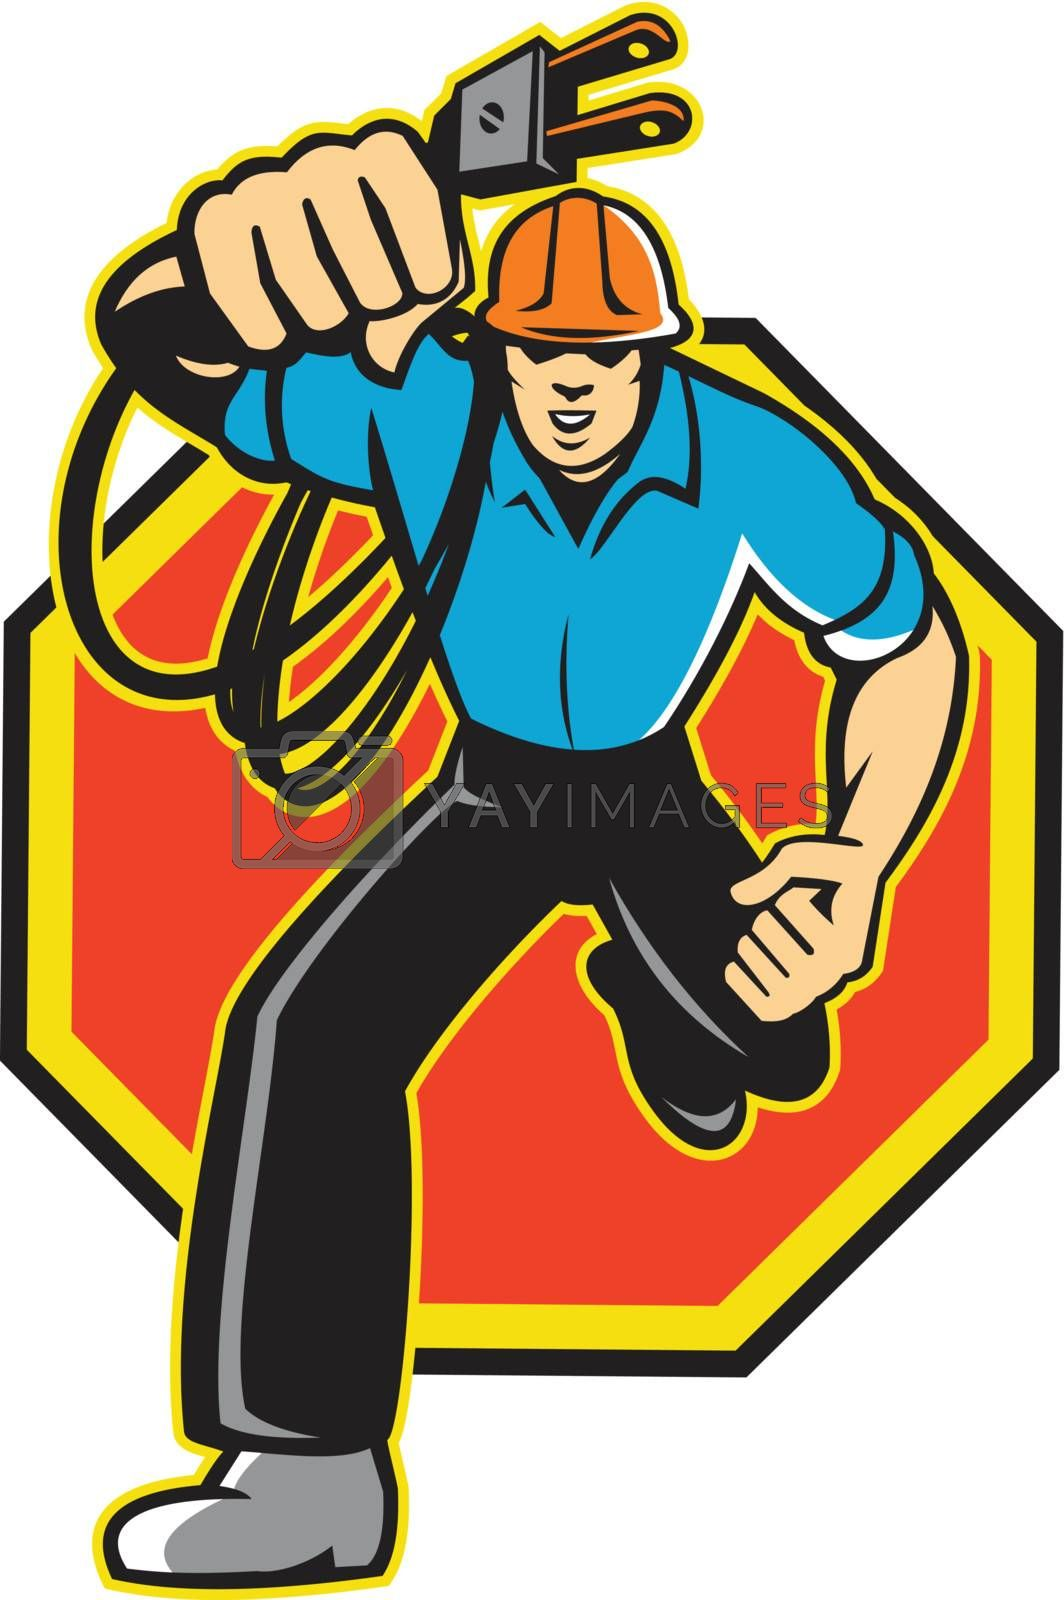 Illustration of an electrician construction worker holding an electrical electric plug with cord running front view set inside hexagon done in retro style in isolated white background.